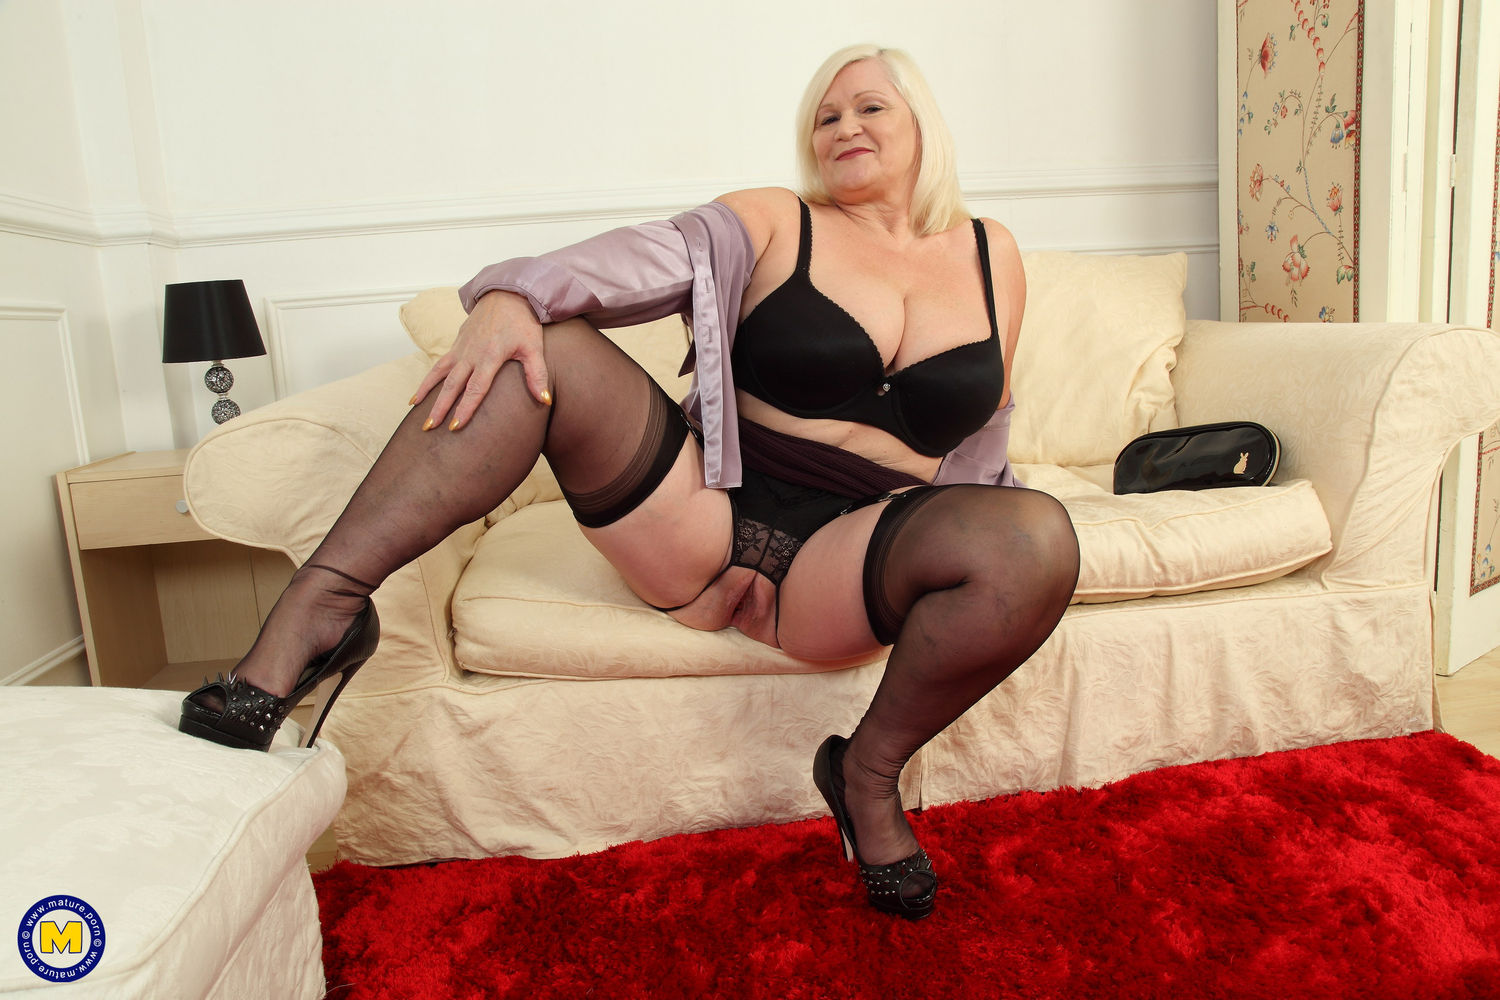 big breasted curvy British housewife hairy pussy in nylon stockings and underwear